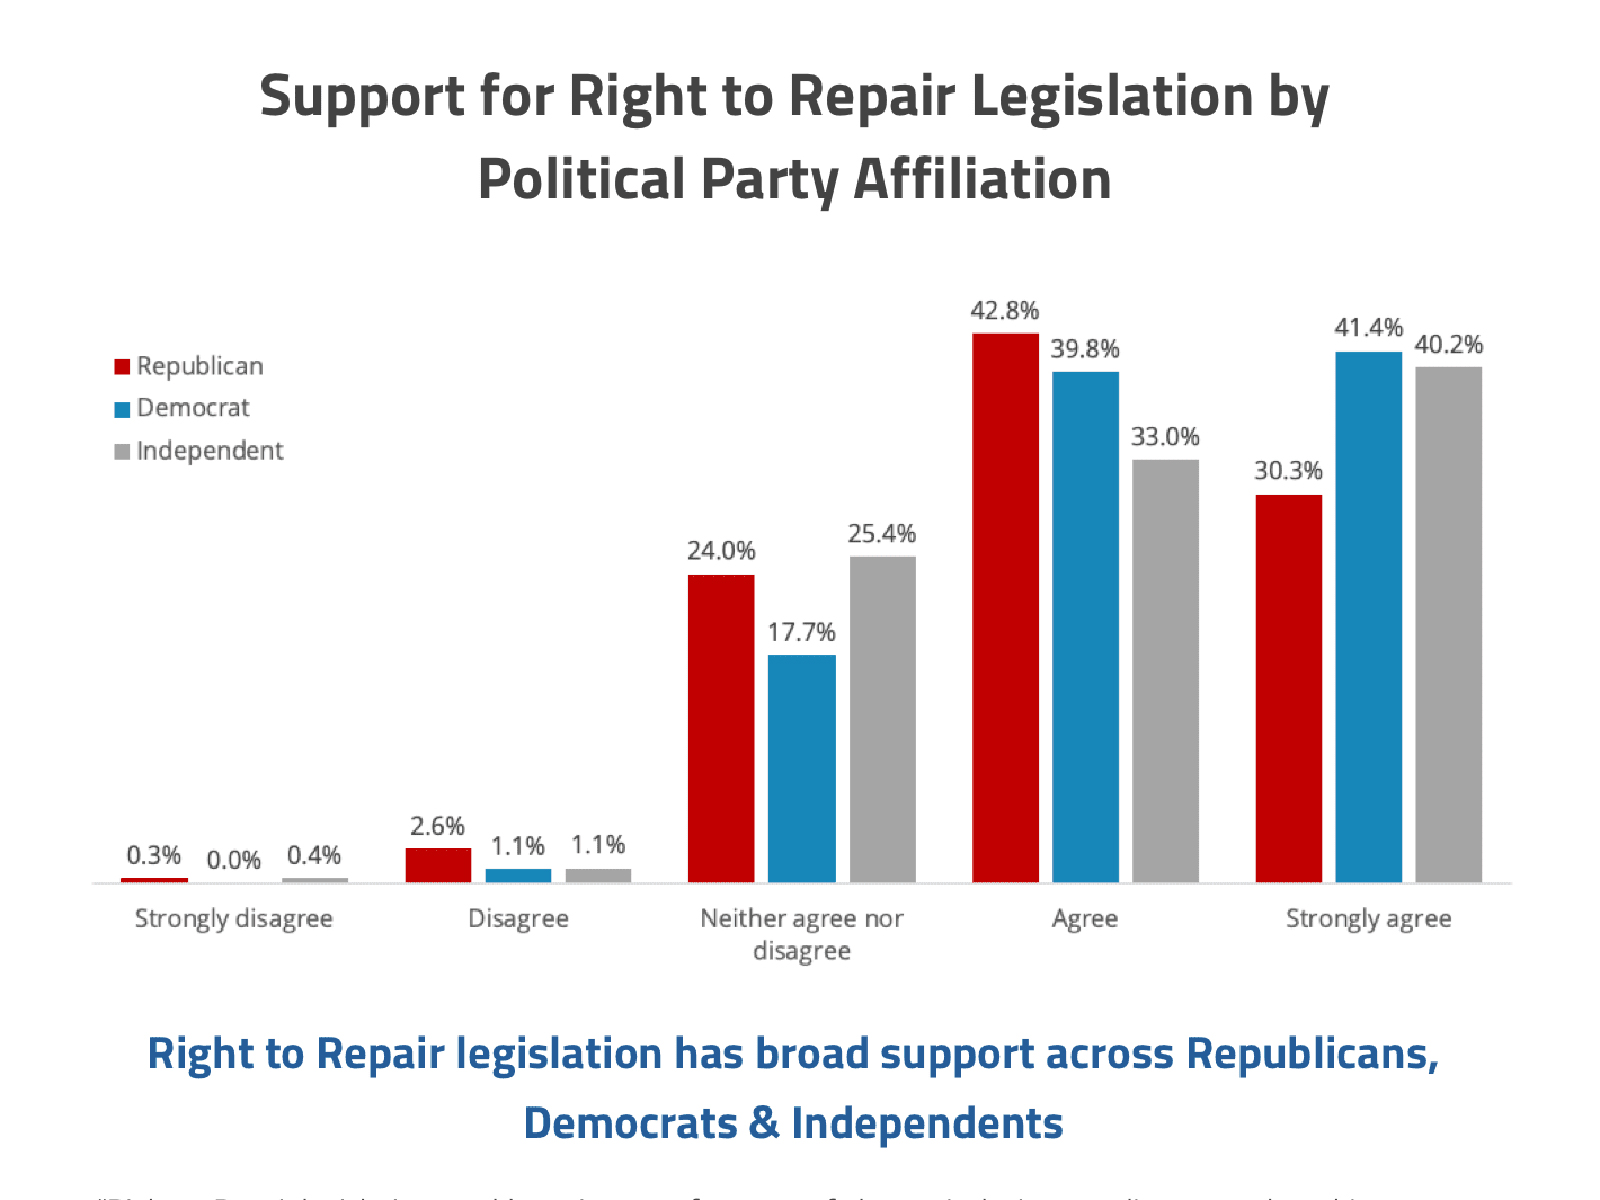 Graph showing support for Right to Repair by American political party